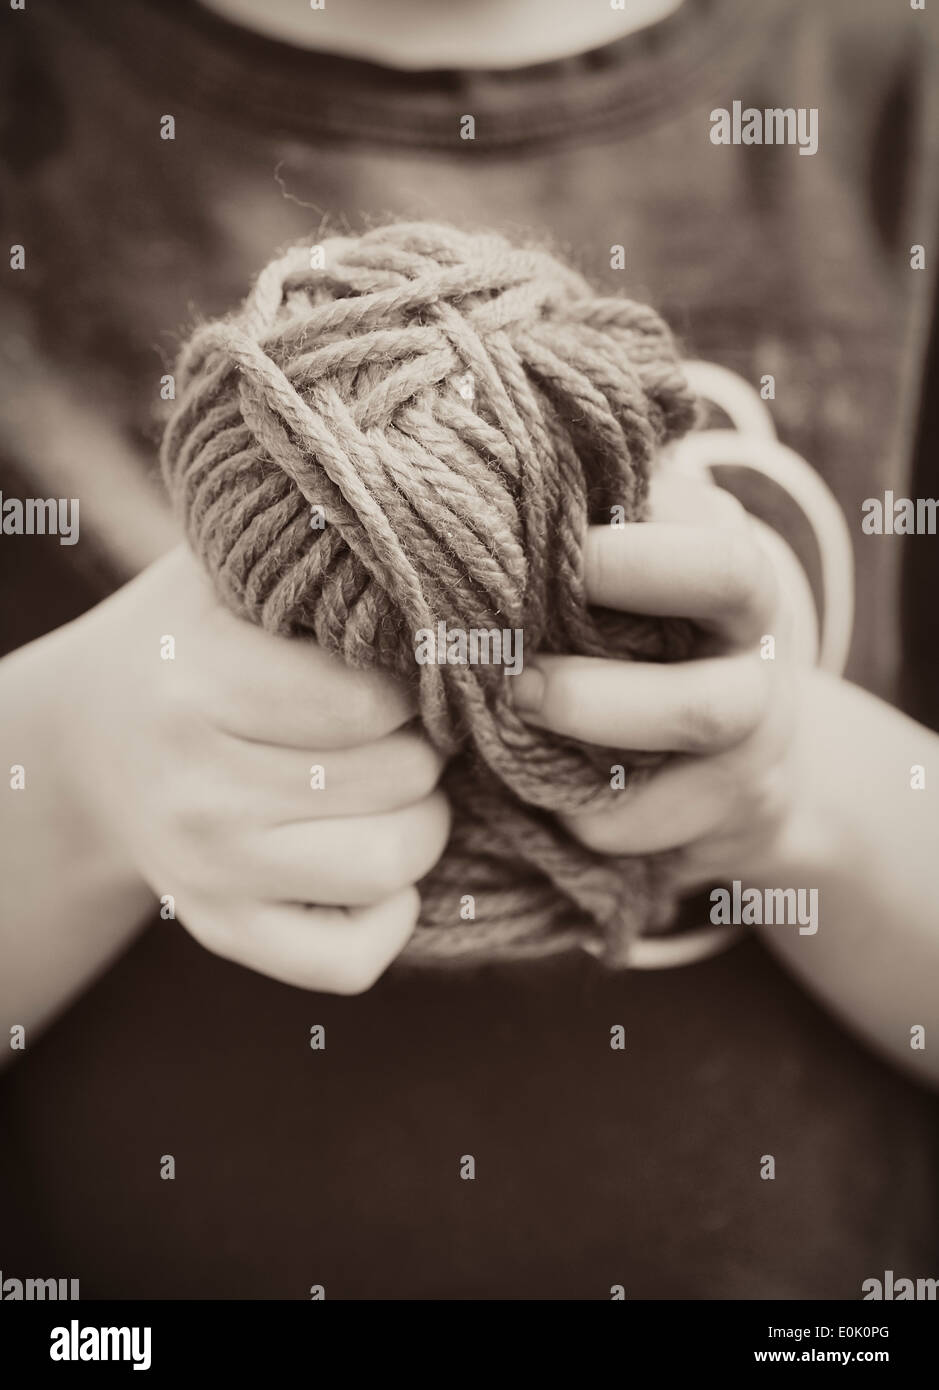 Close up of little girl holding a ball of yarn in her hands - Stock Image